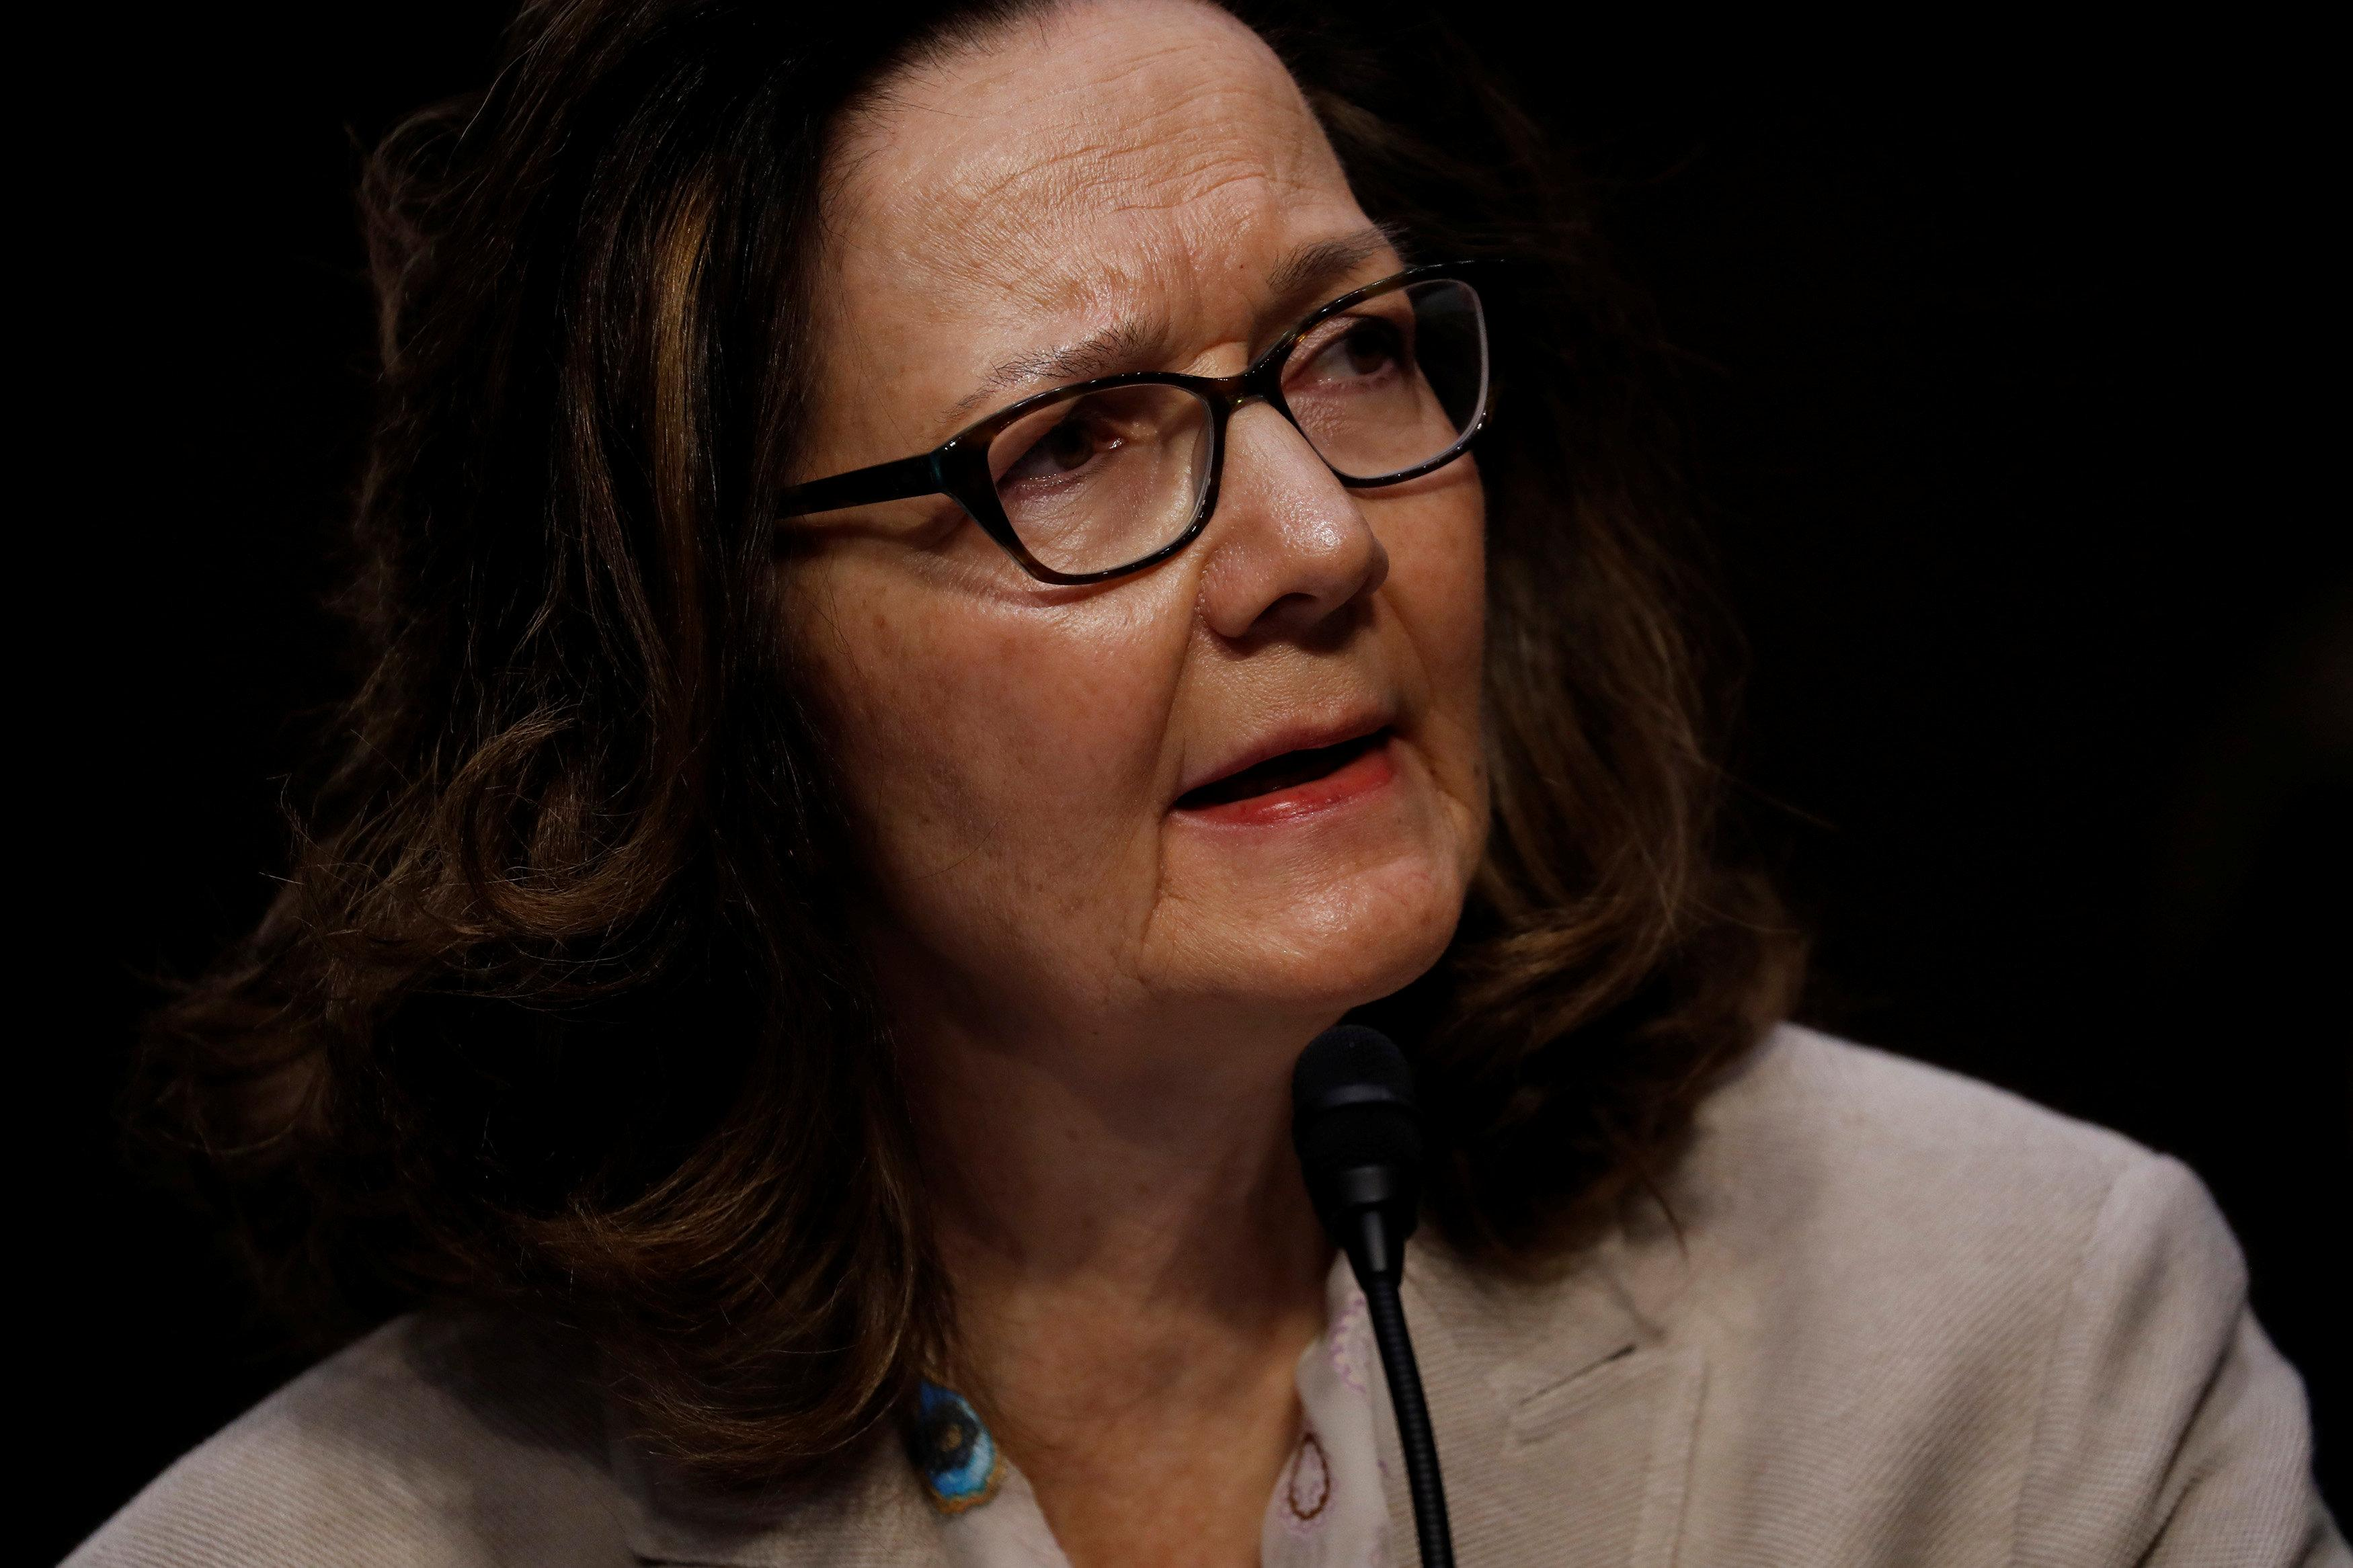 CIA Director nominee Gina Haspel testifies at her confirmation hearing before the Senate Intelligence Committee on Capitol Hill in Washington, U.S., May 9, 2018.  Aaron P. Bernstein